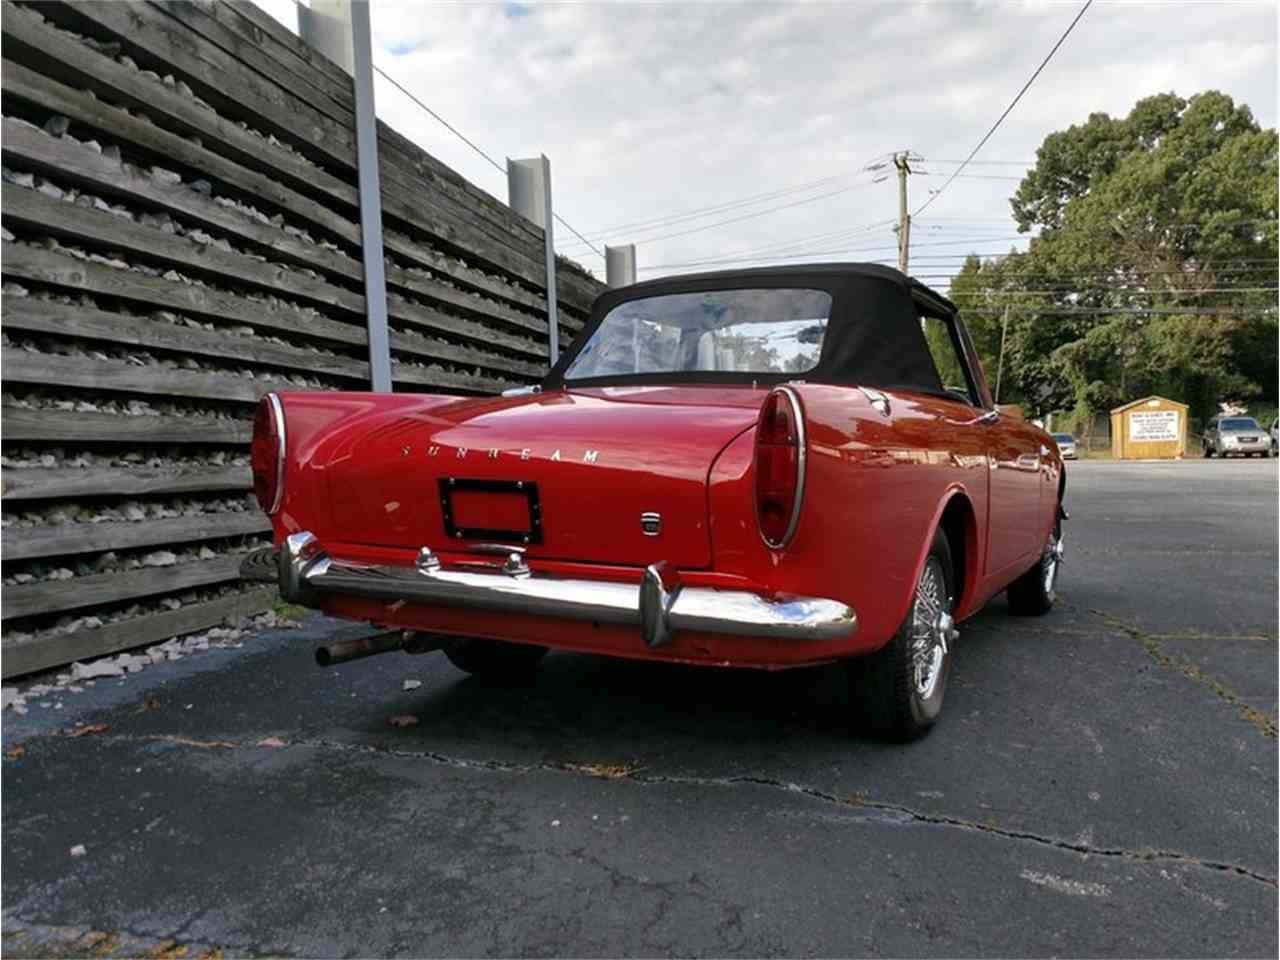 1967 Sunbeam Alpine Rootes 1725 For Sale In Greensboro North Carolina 27407 together with Curbside Classic 1964 Sunbeam Rapier Series Iv A Saucier Minx likewise 1967 Sunbeam Alpine Rootes 1725 For Sale In Greensboro North Carolina 27407 further Sale furthermore Marktplatz anzeige 1392 Alpine. on 1967 sunbeam alpine series v 1725